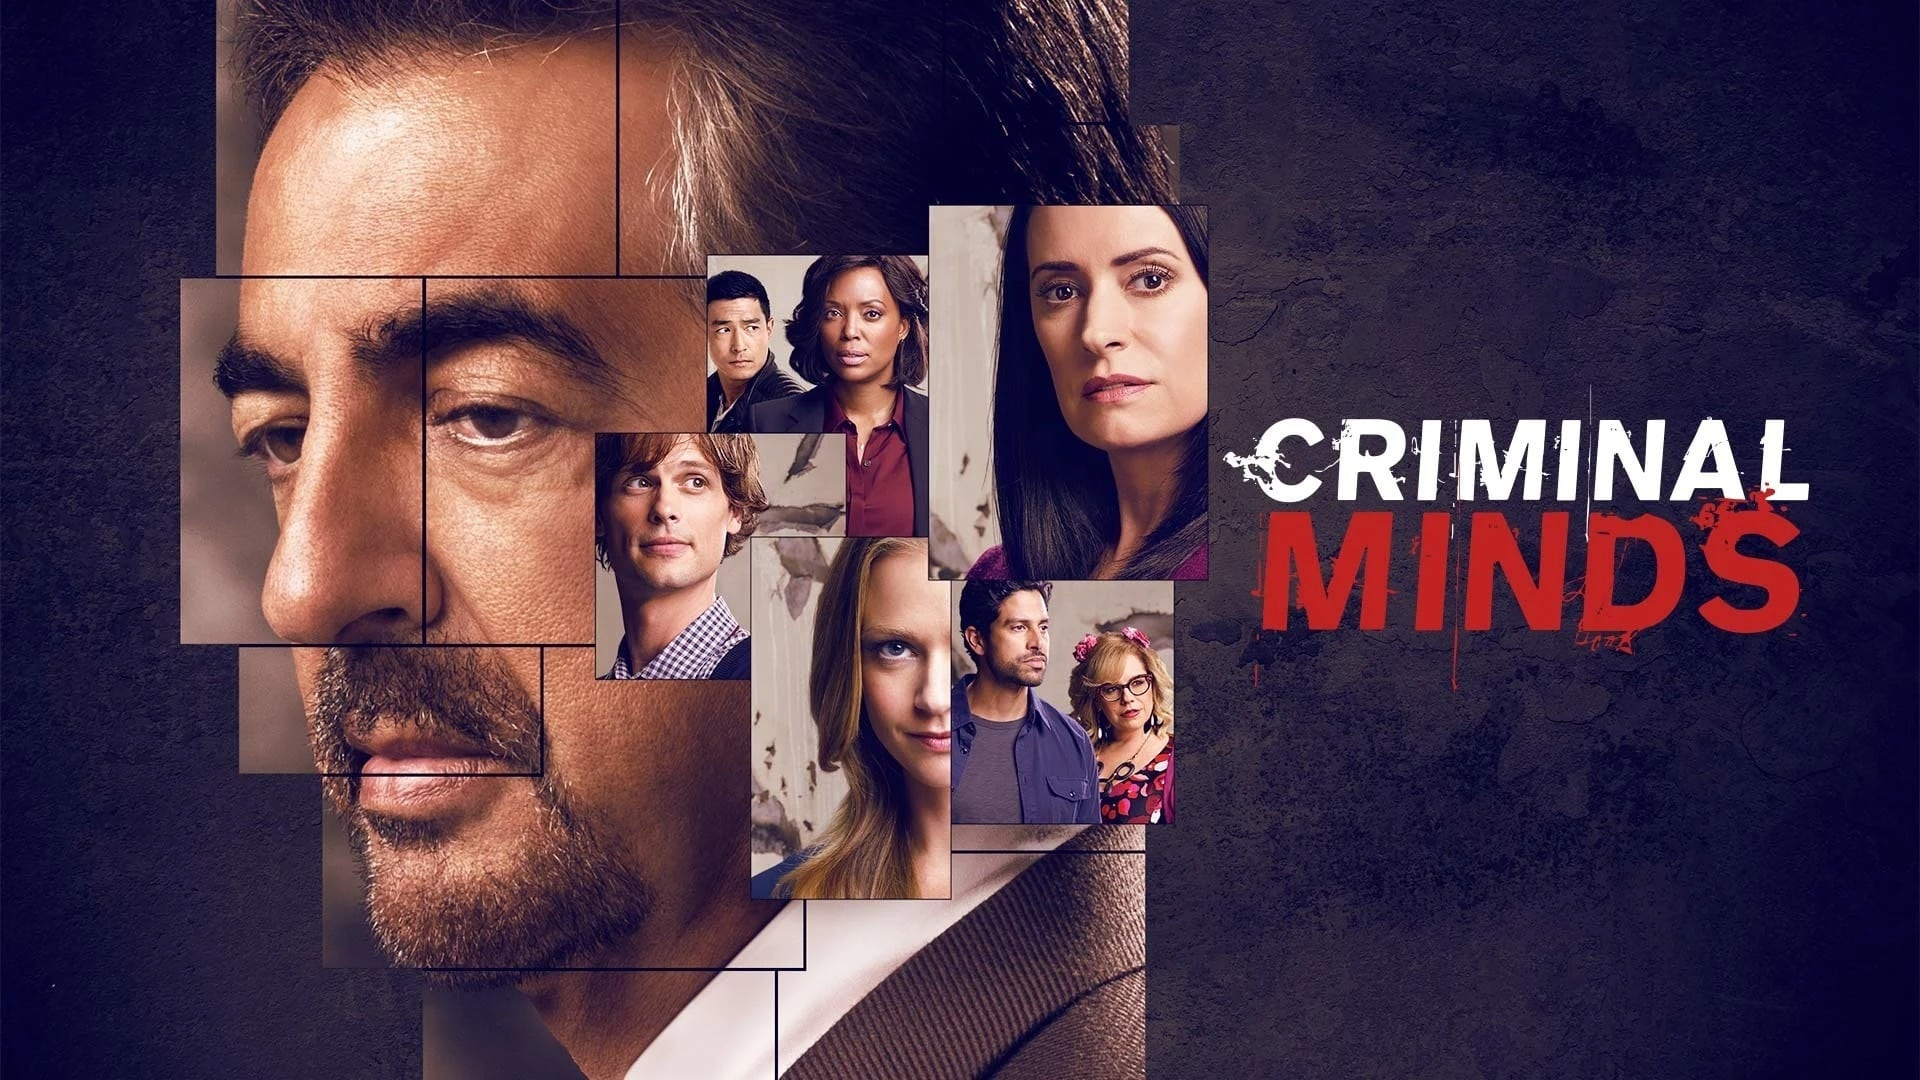 Criminal Minds - Season 9 (1970)